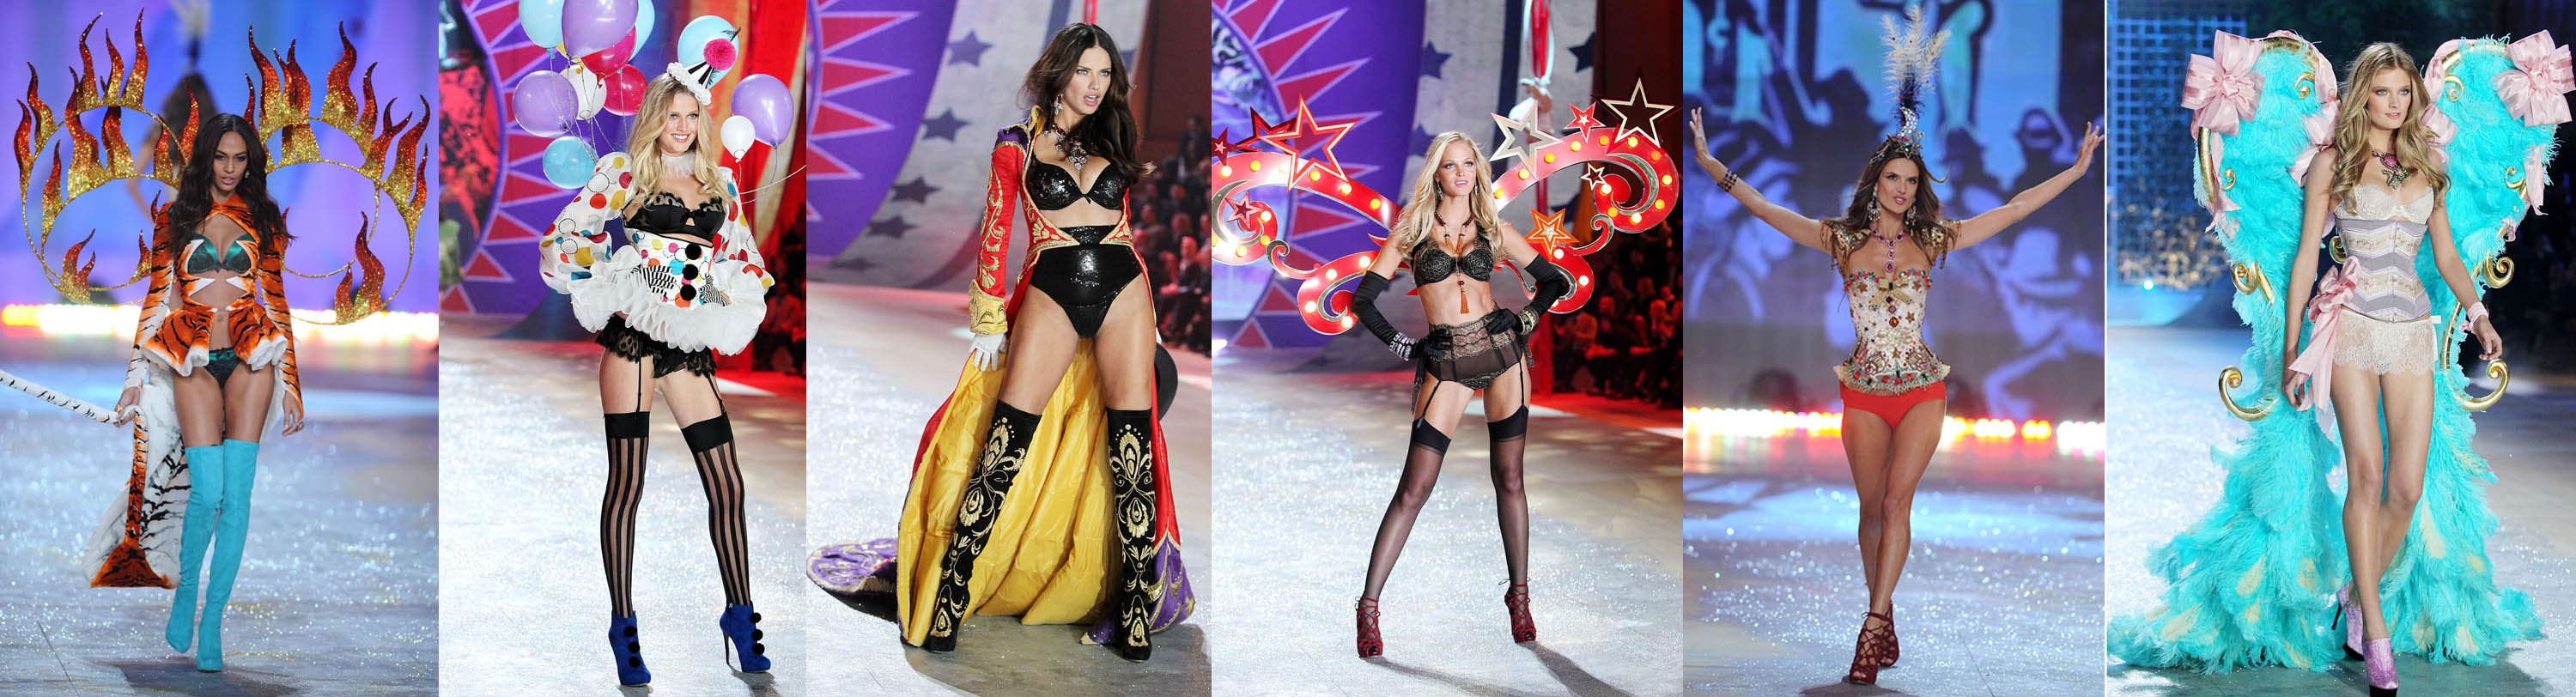 Victoria's secret fashion show 2012 - Charonbelli's blog mode